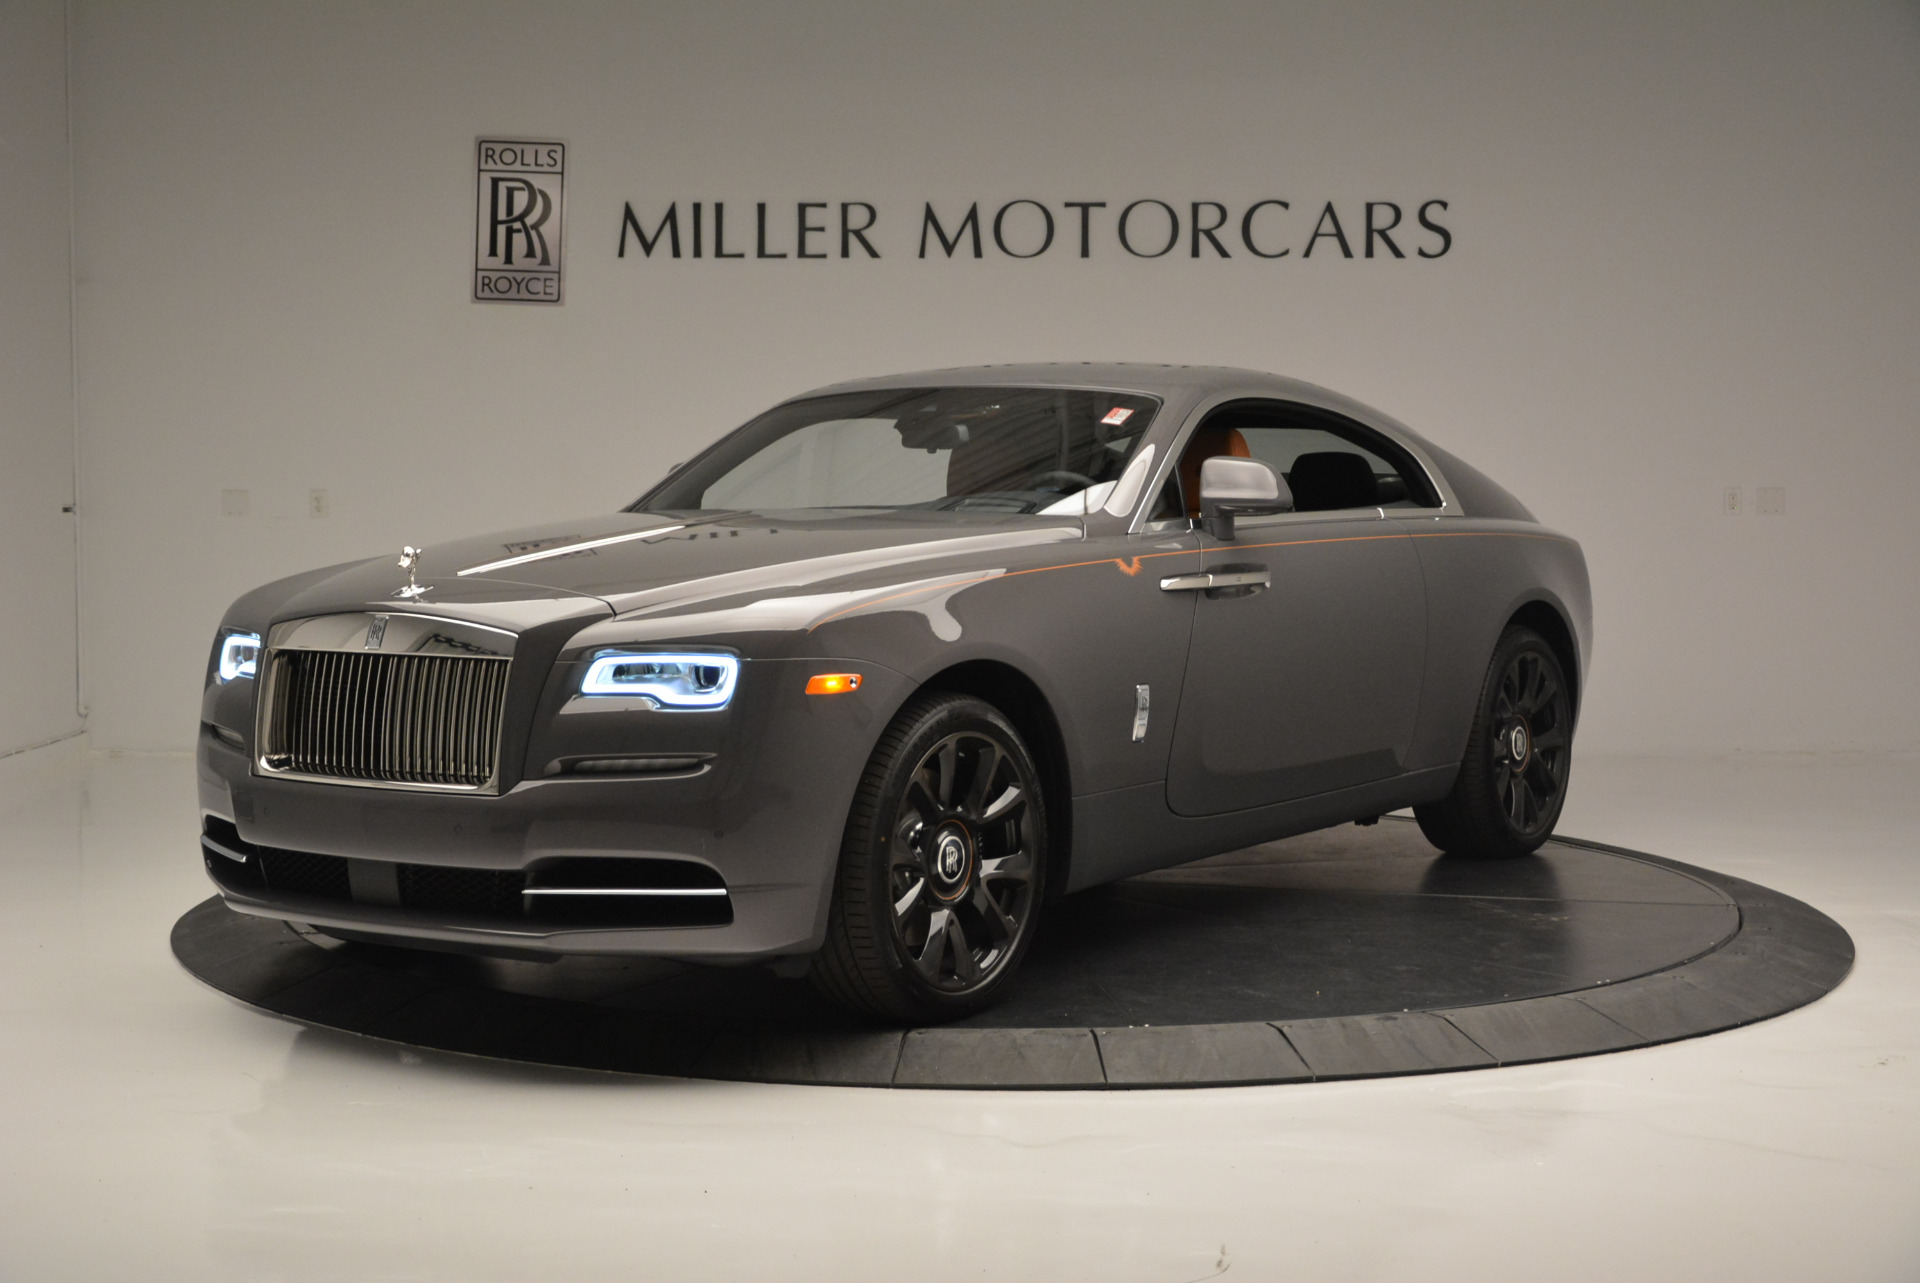 New 2018 Rolls-Royce Wraith Luminary Collection for sale Sold at Bentley Greenwich in Greenwich CT 06830 1